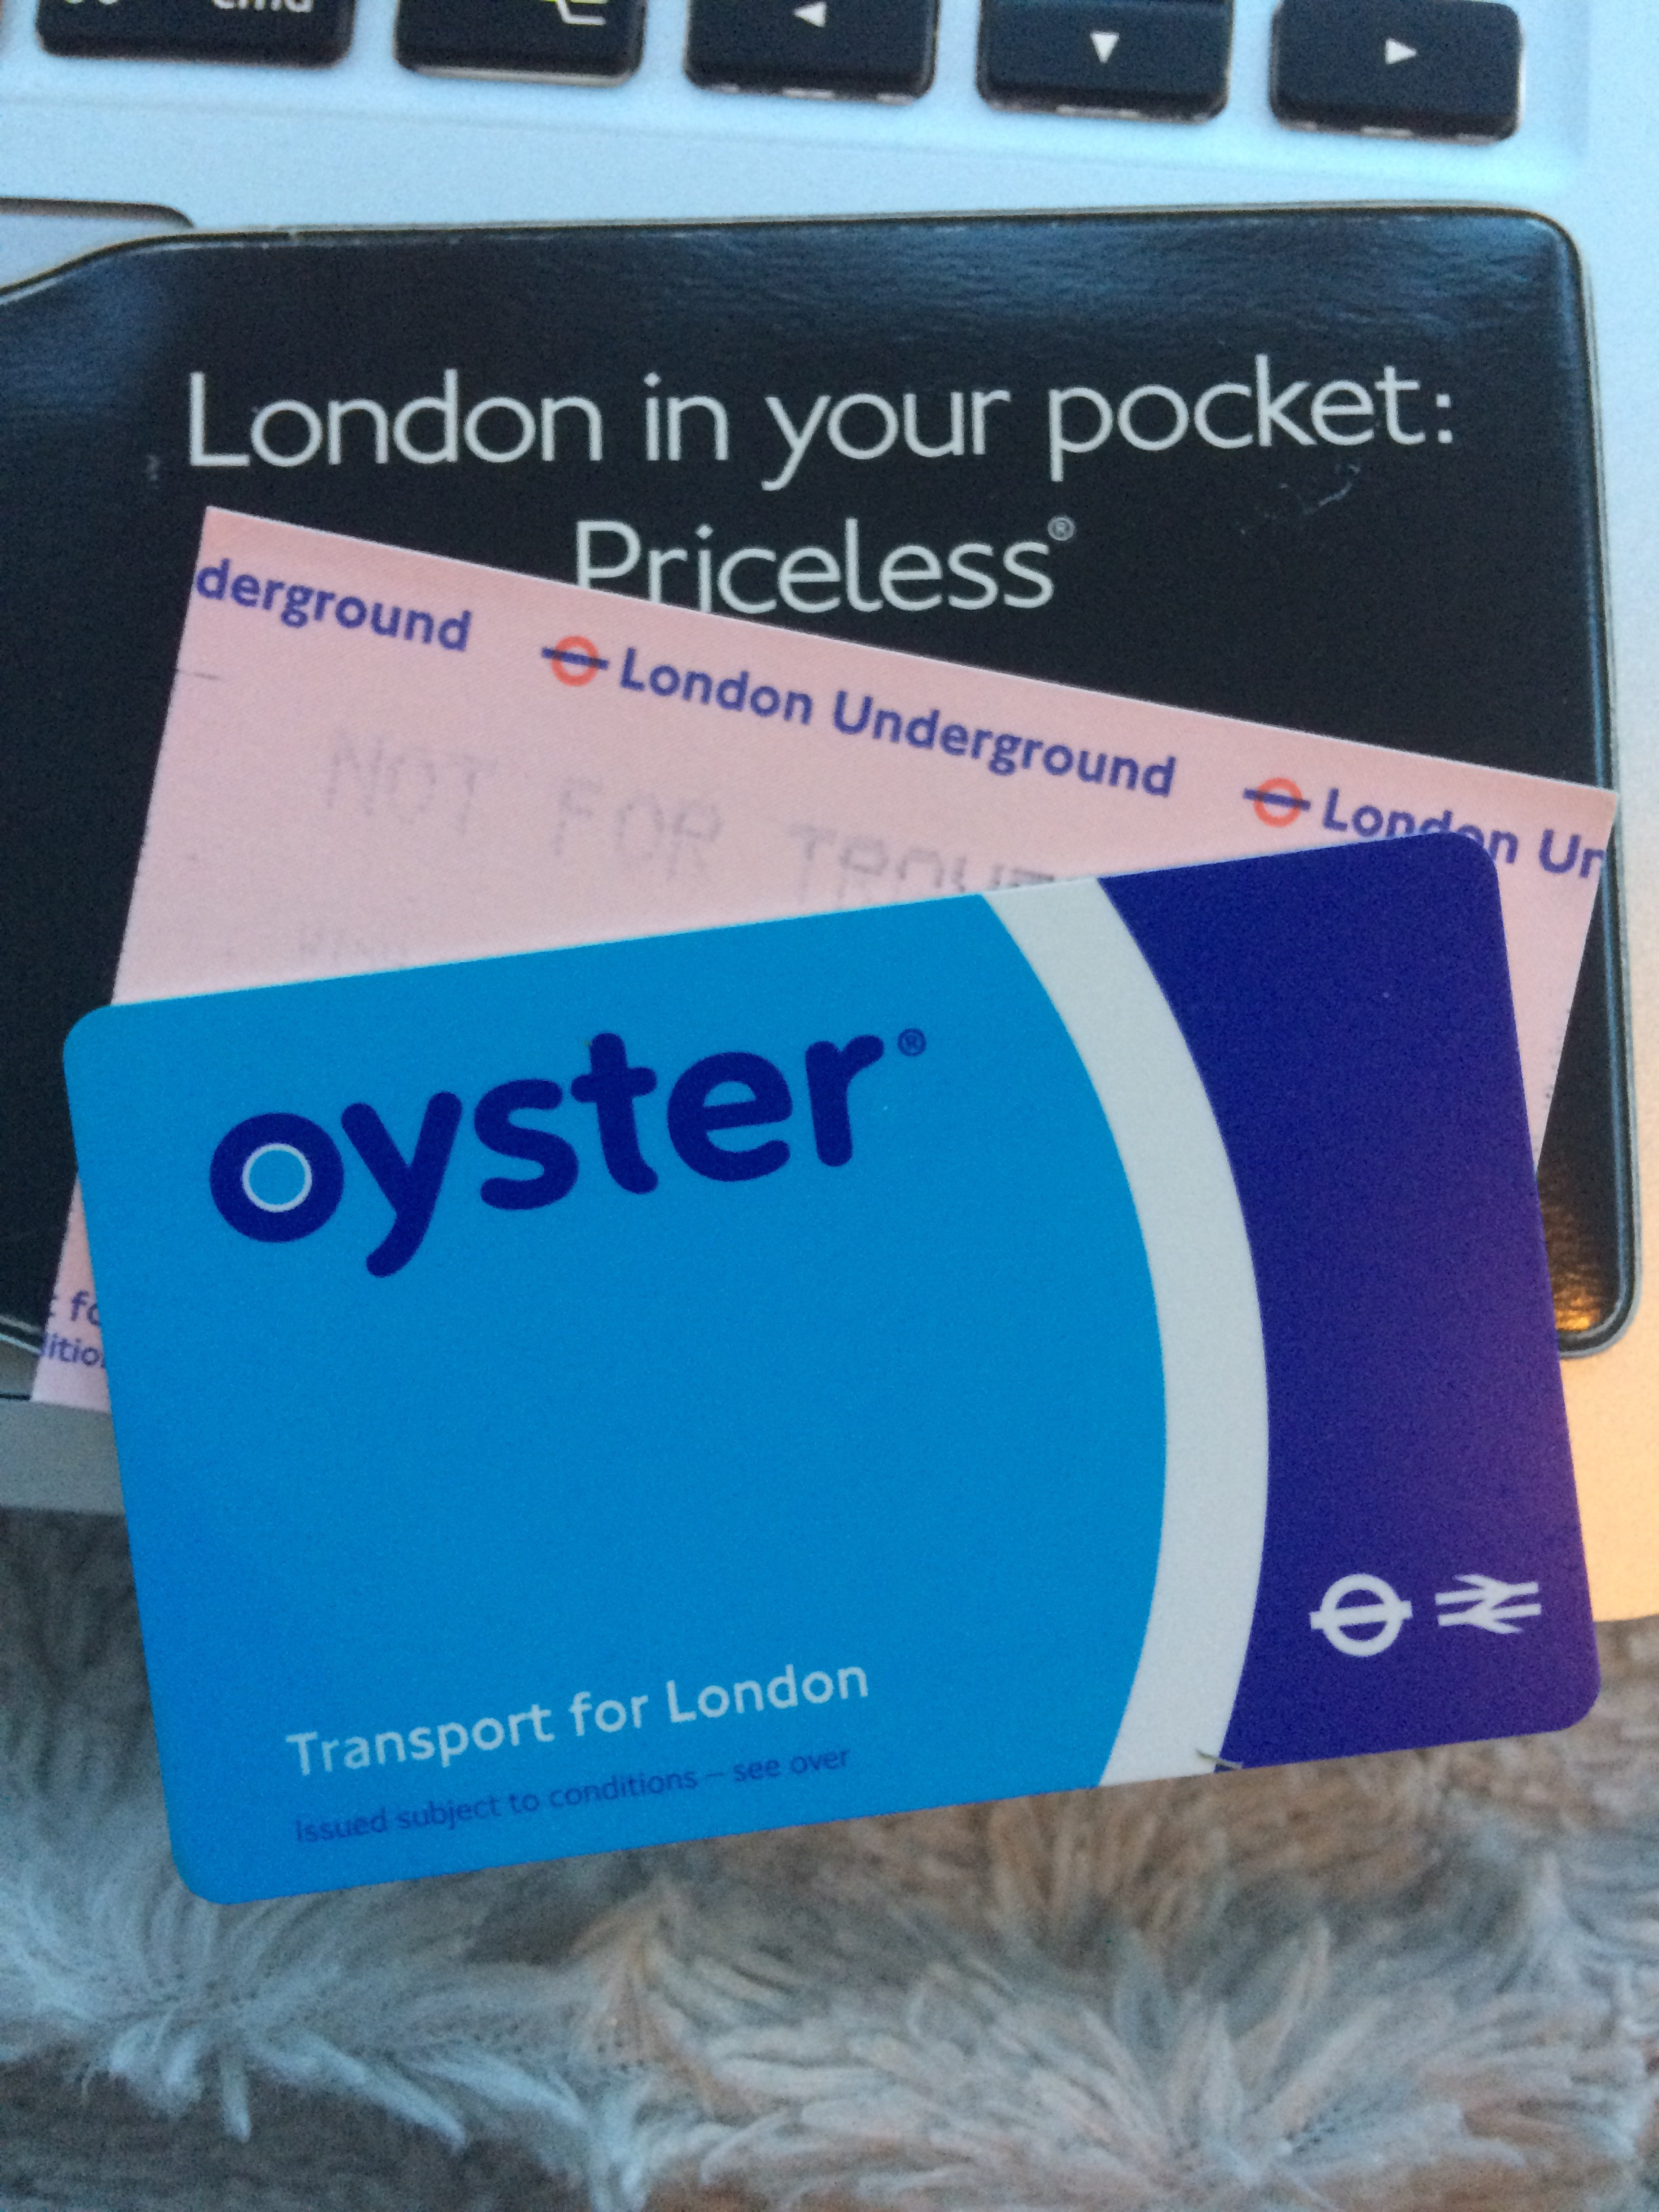 The one where I don't give up my oyster card…